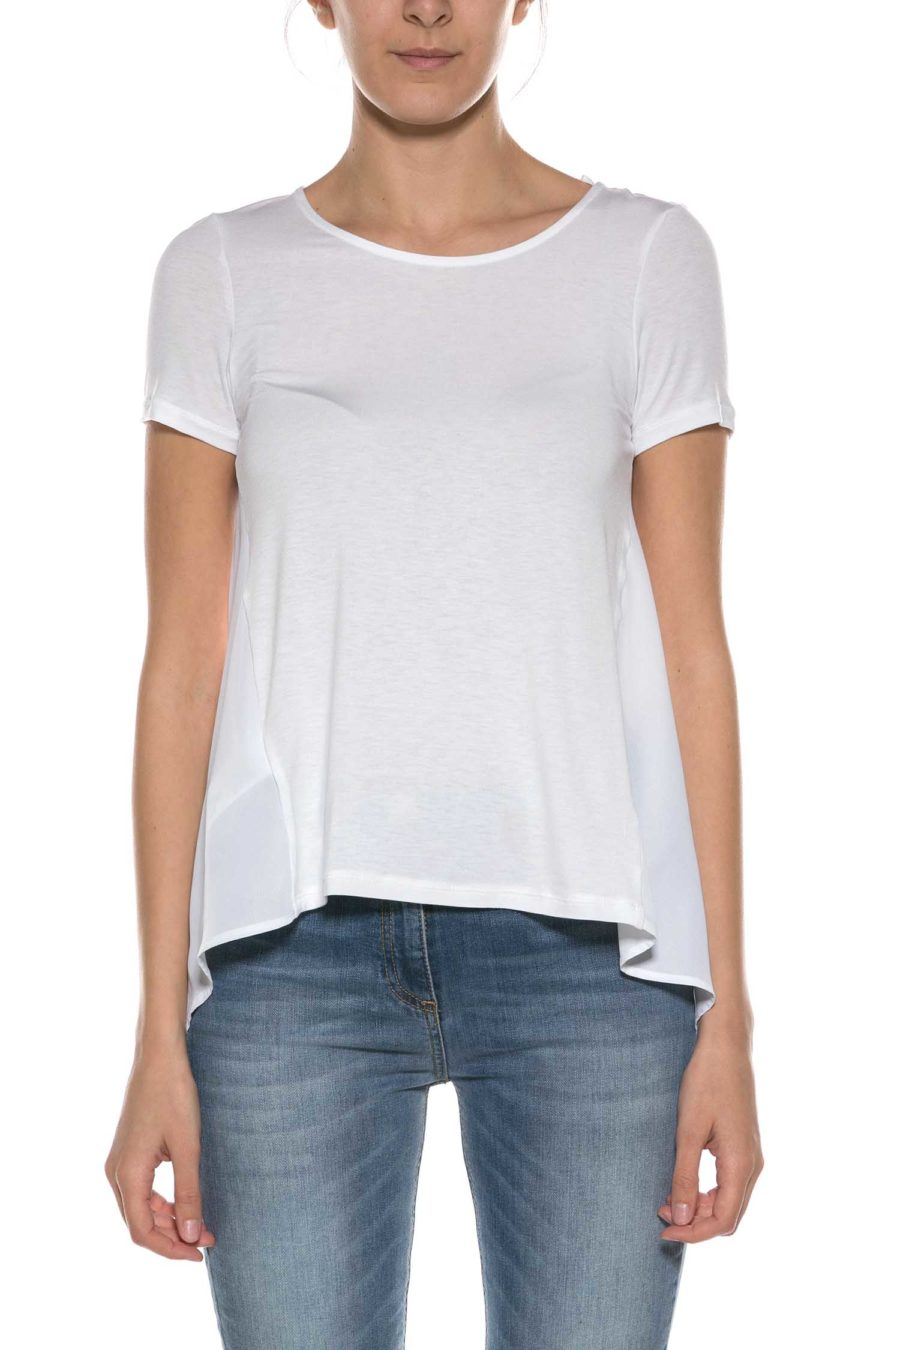 DONDUP-T-SHIRT CON SPACCO SULLA SCHIENA-DDS777JS0215 BIA